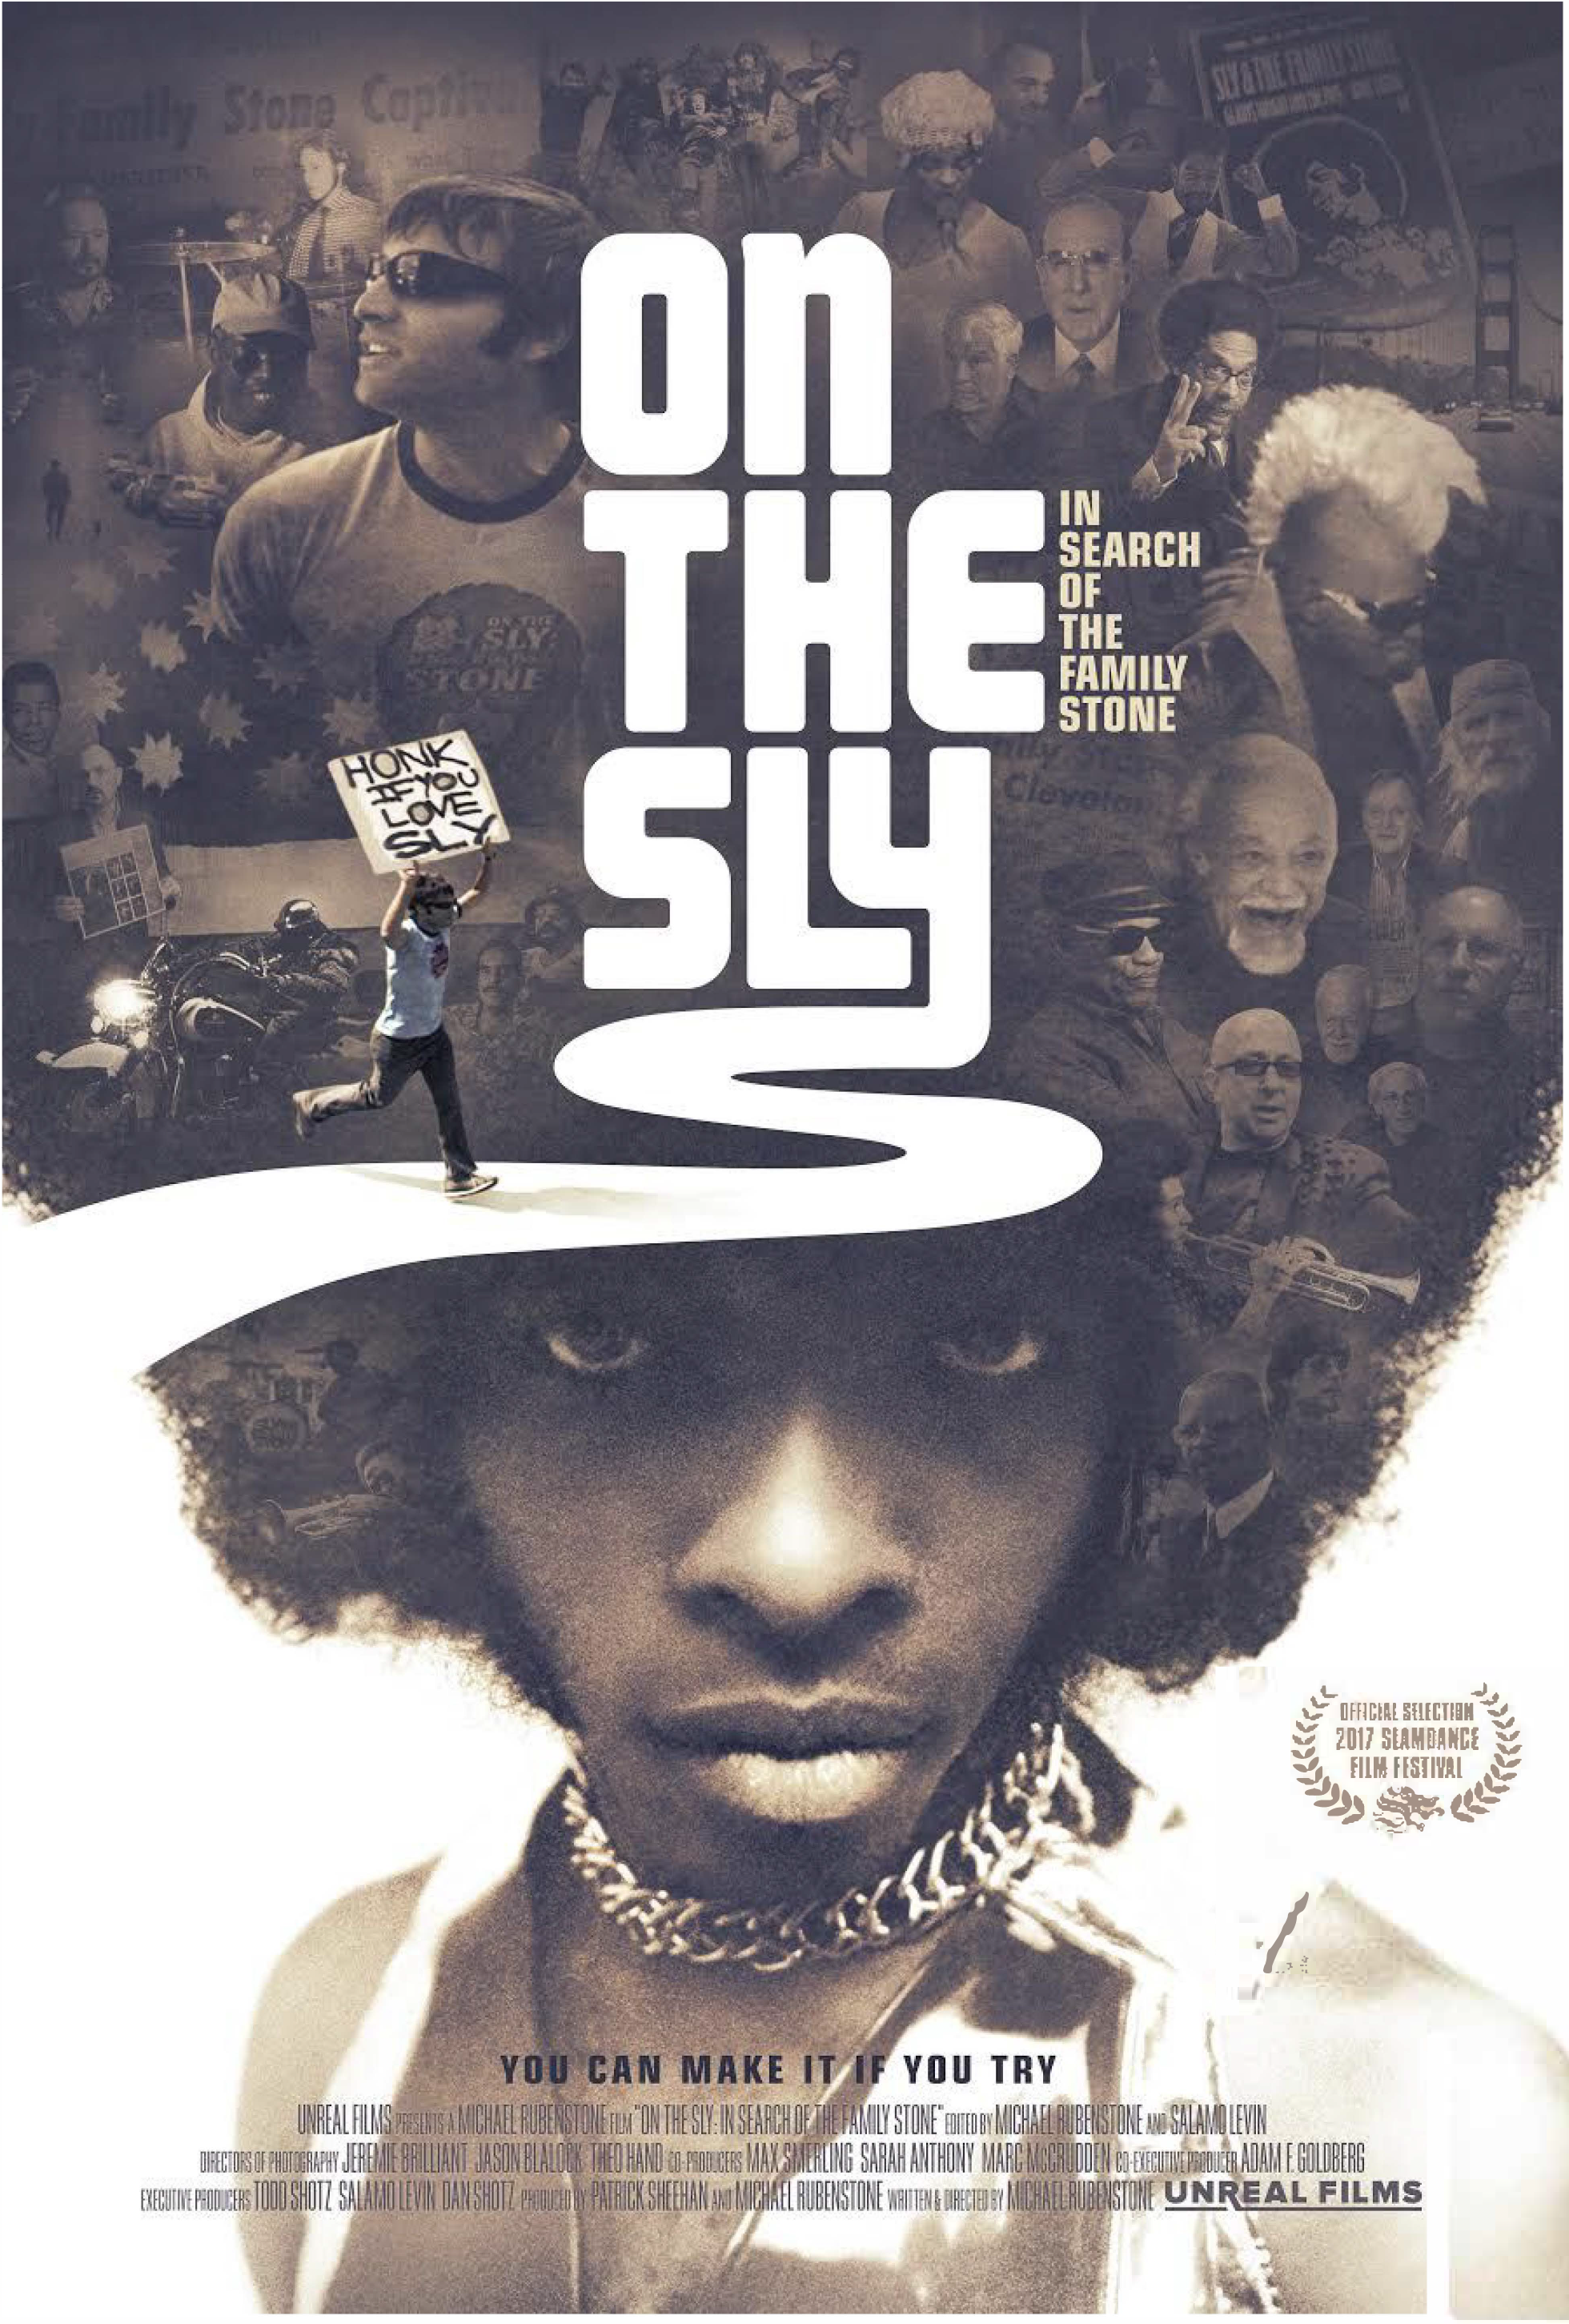 ON THE SLY: In Search of the Family Stone - Director and super-fan Michael Rubenstone sets out in search of long-time reclusive funk legend, Sly Stone. Along the way, he meets with some success, but finds countless more failures in trying to capture a man who refuses to be contained.Watch the TrailerWebsite